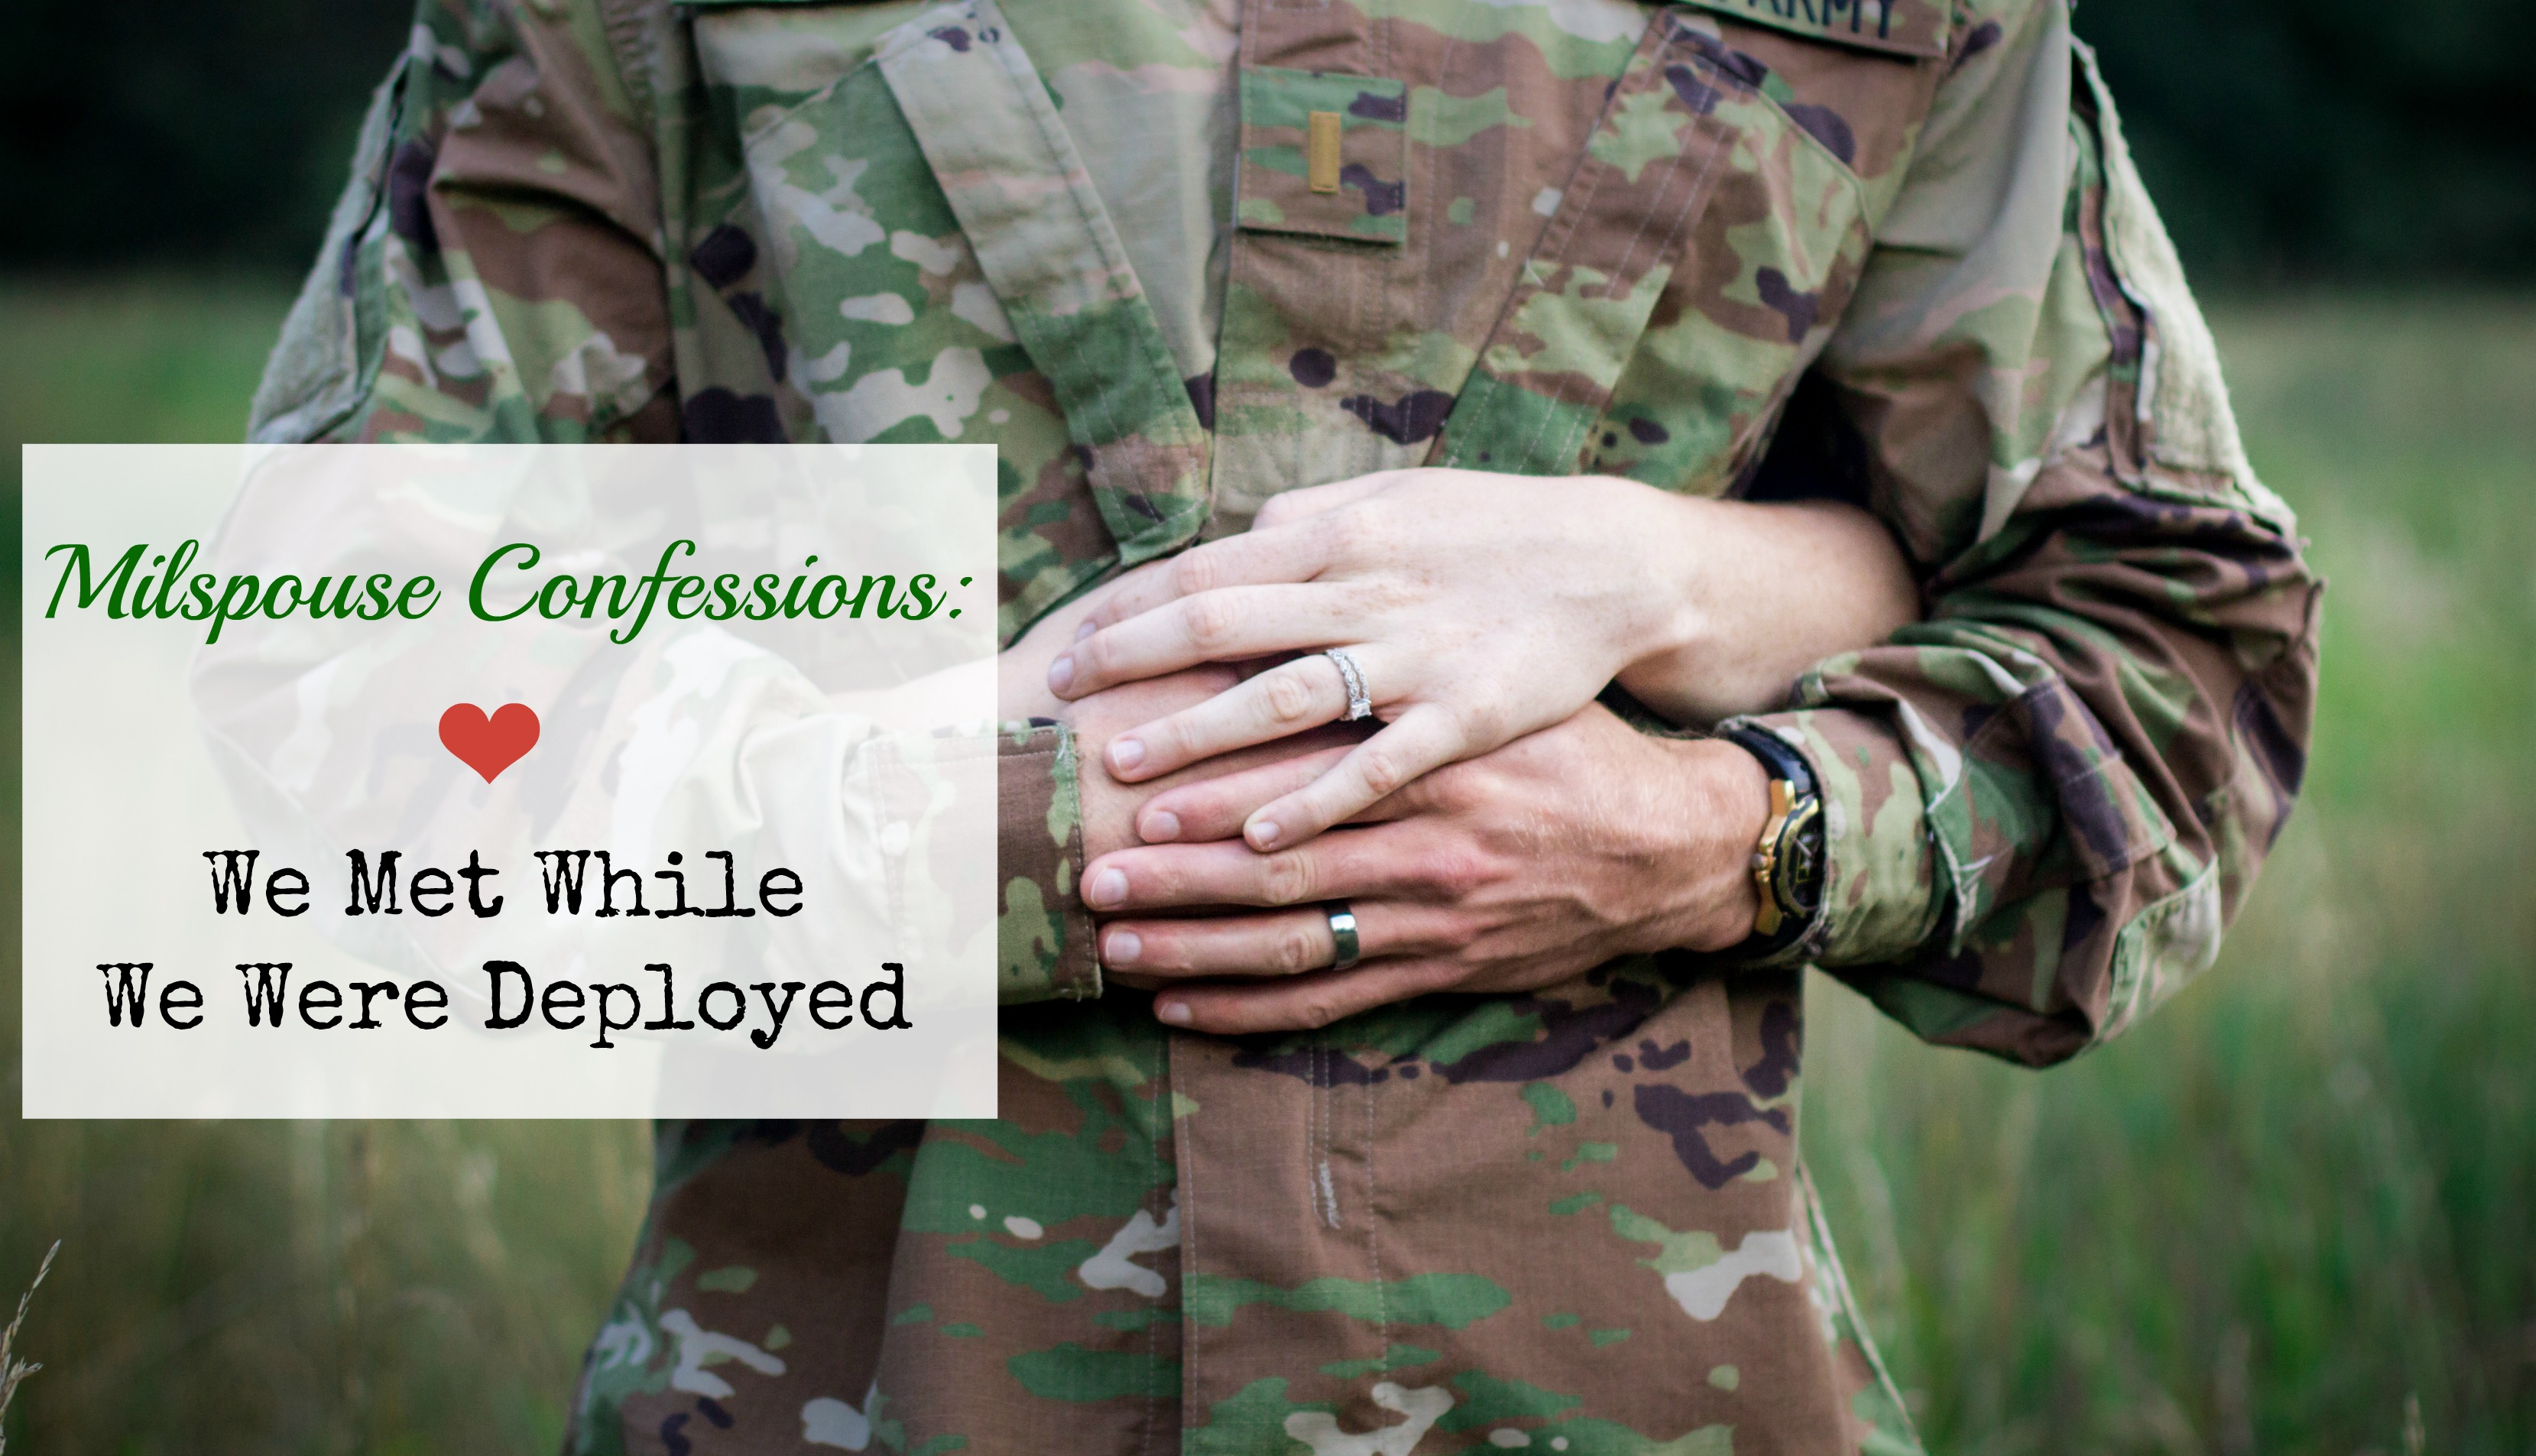 Milspouse Confessions: We Met While We Were Deployed